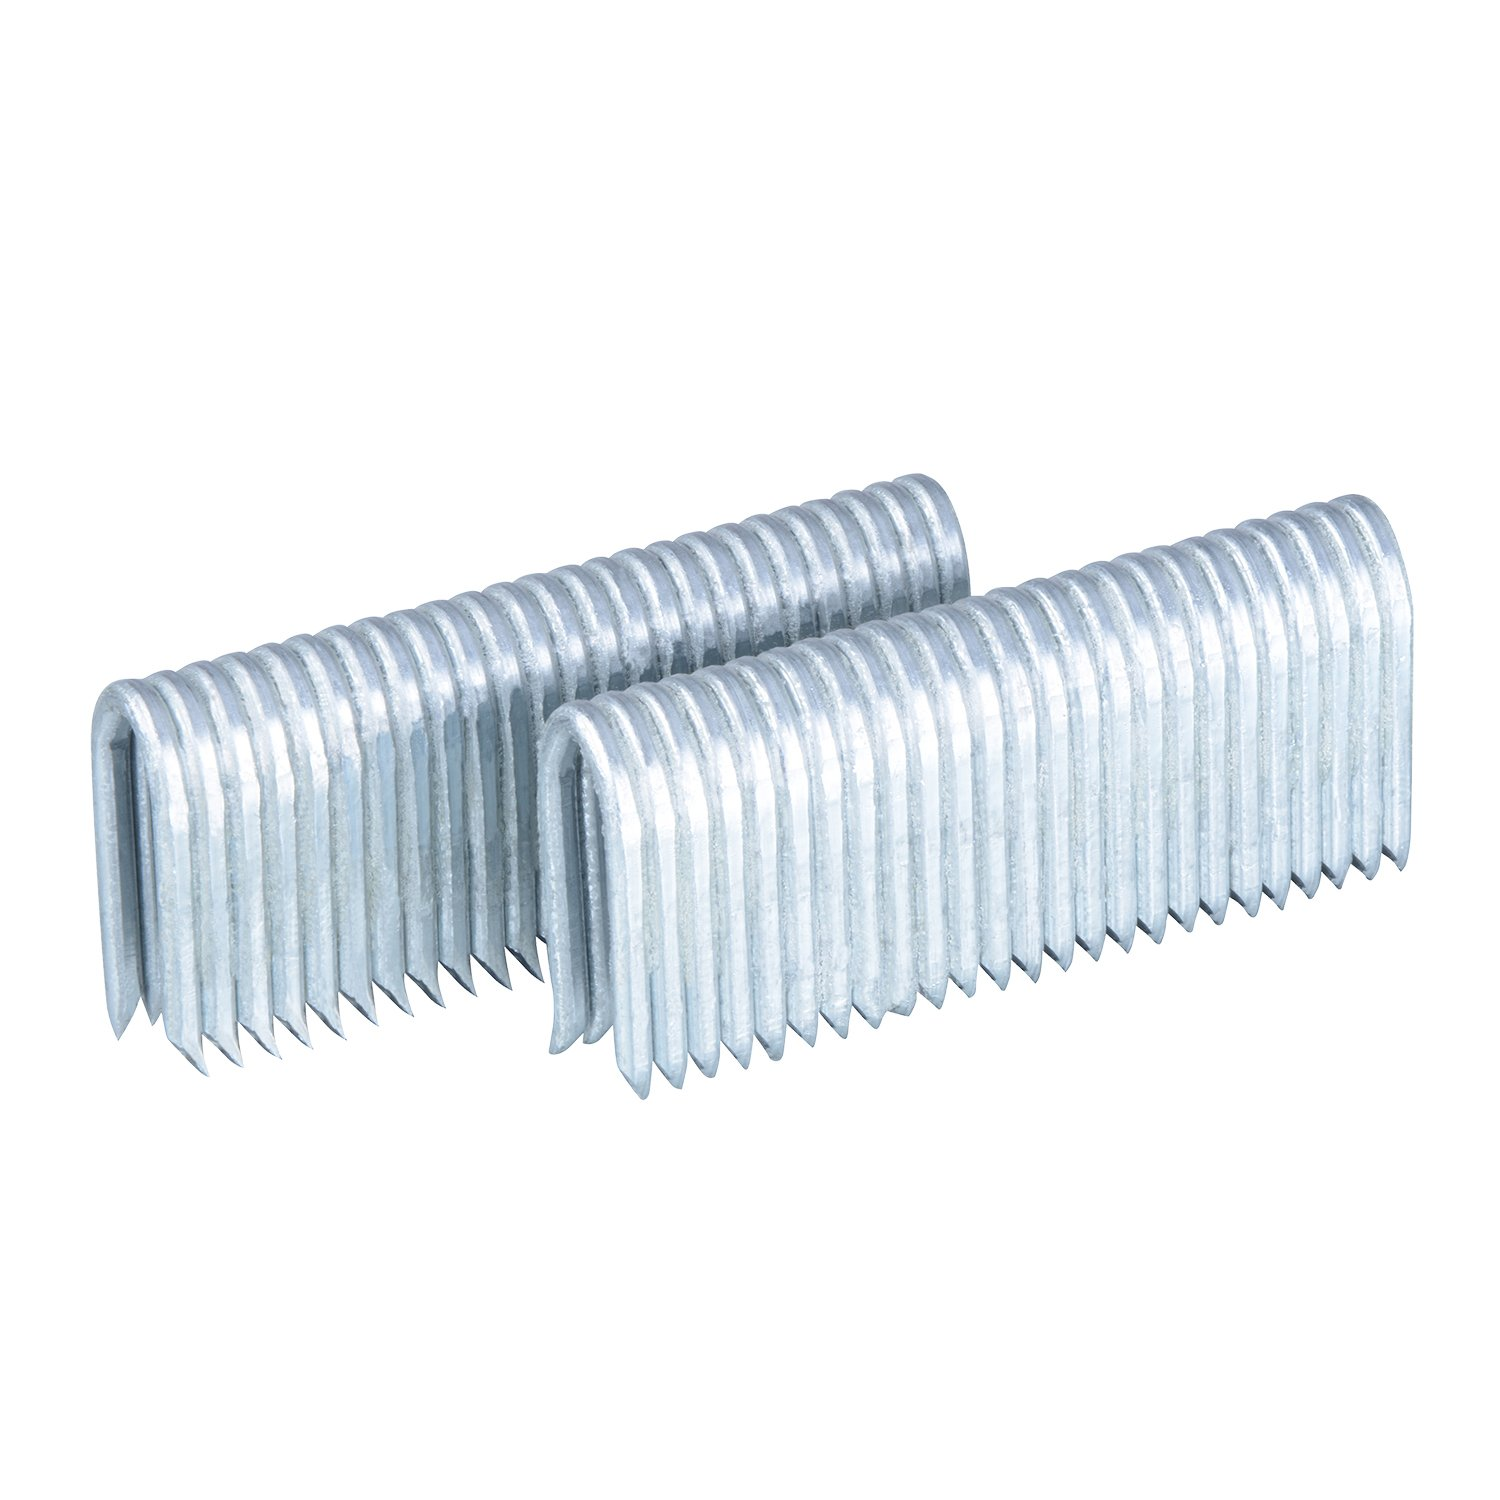 Freeman FS105G1916 10.5-Gauge 1-9/16'' Glue Collated Barbed Fencing Staples (1500 count) Rust and Corrosion Resistant for Fencing and Outdoor Use by Freeman